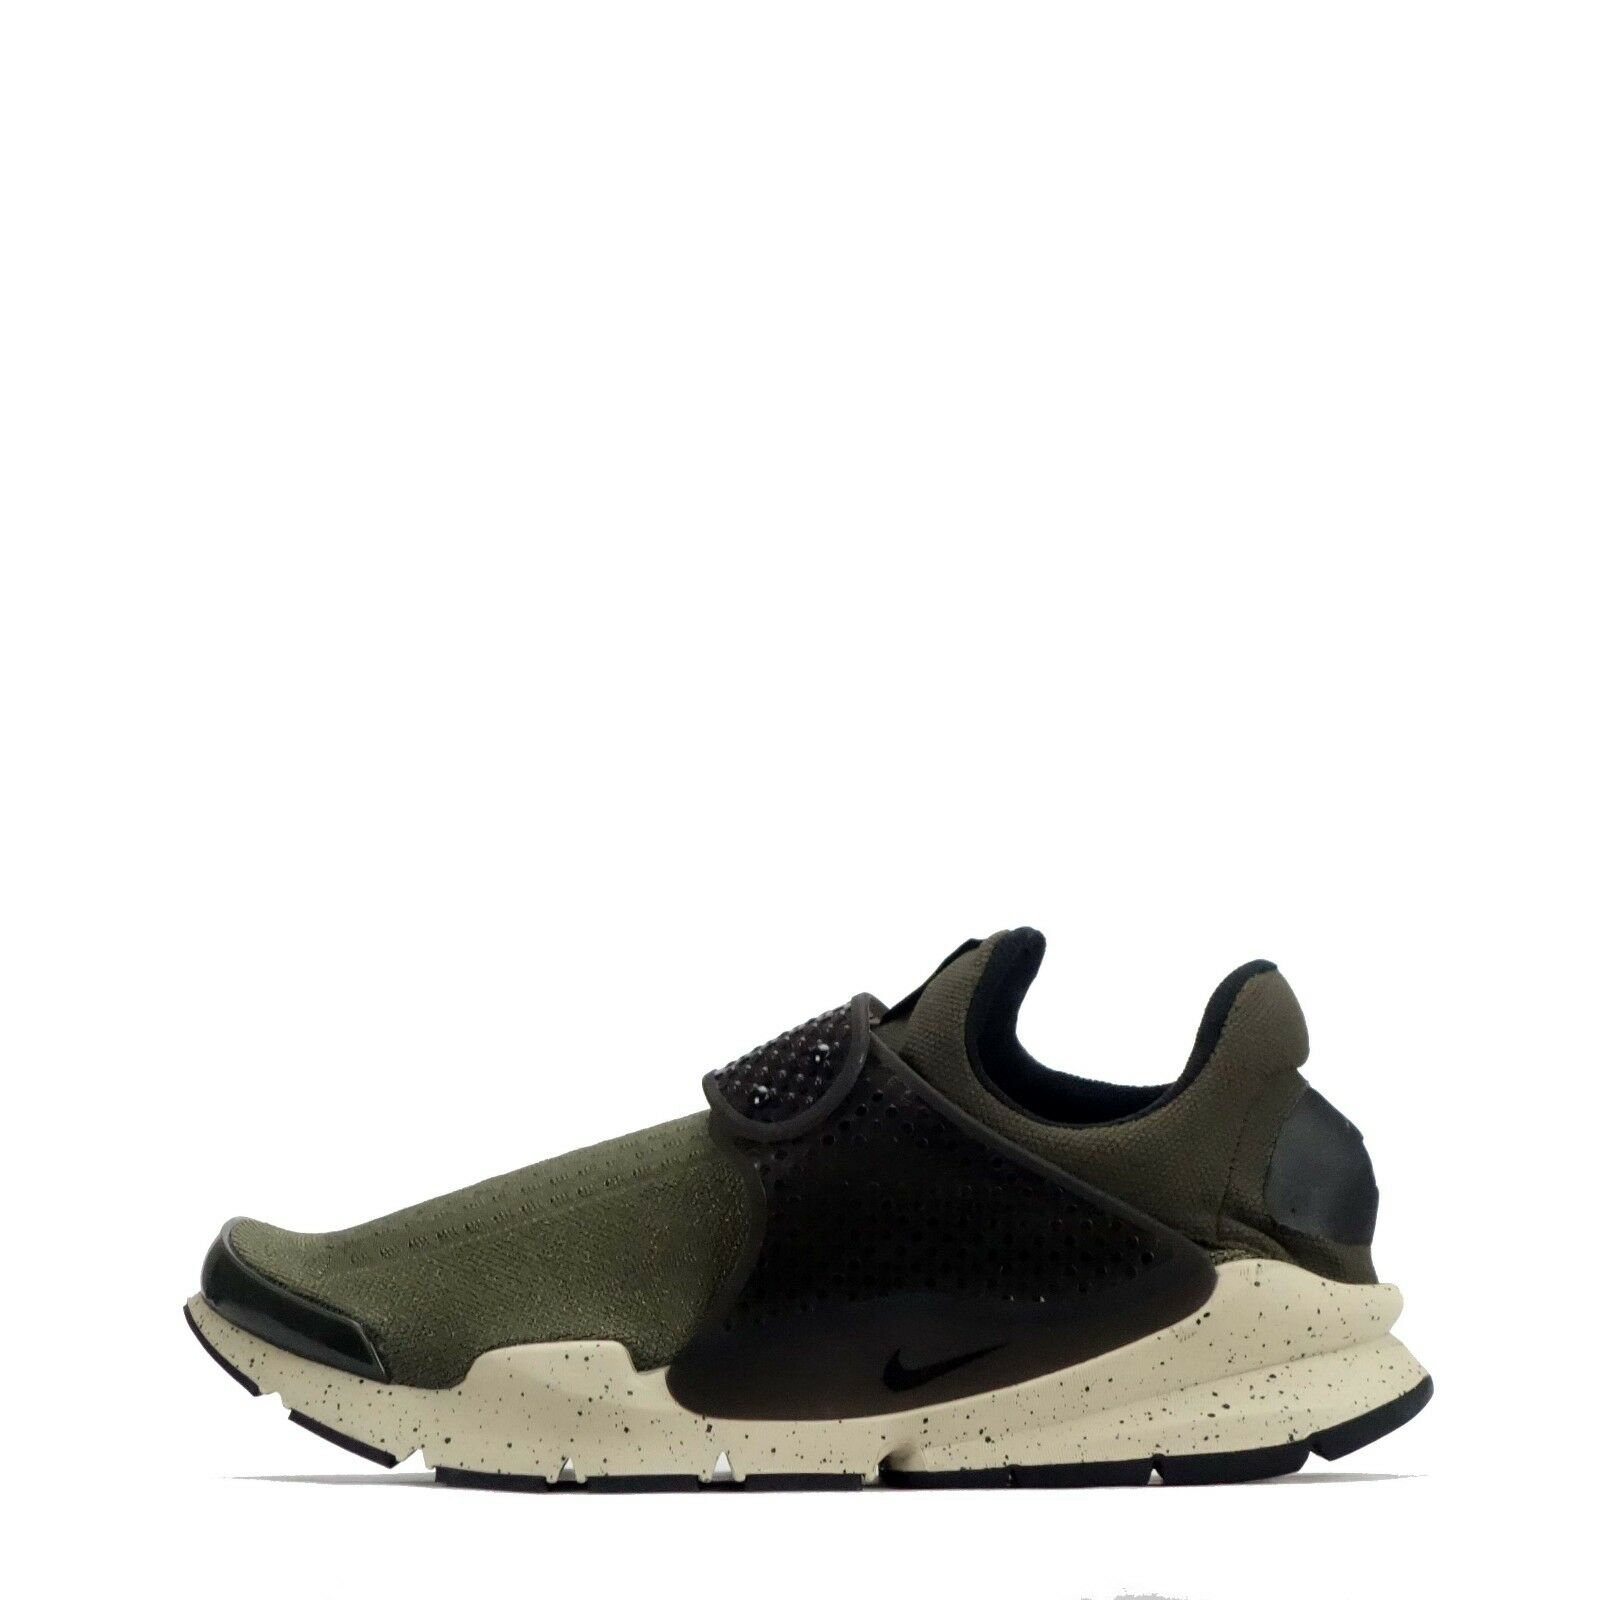 Nike Sock Dart Mens Unisex Slip On Trainers shoes Cargo Khaki